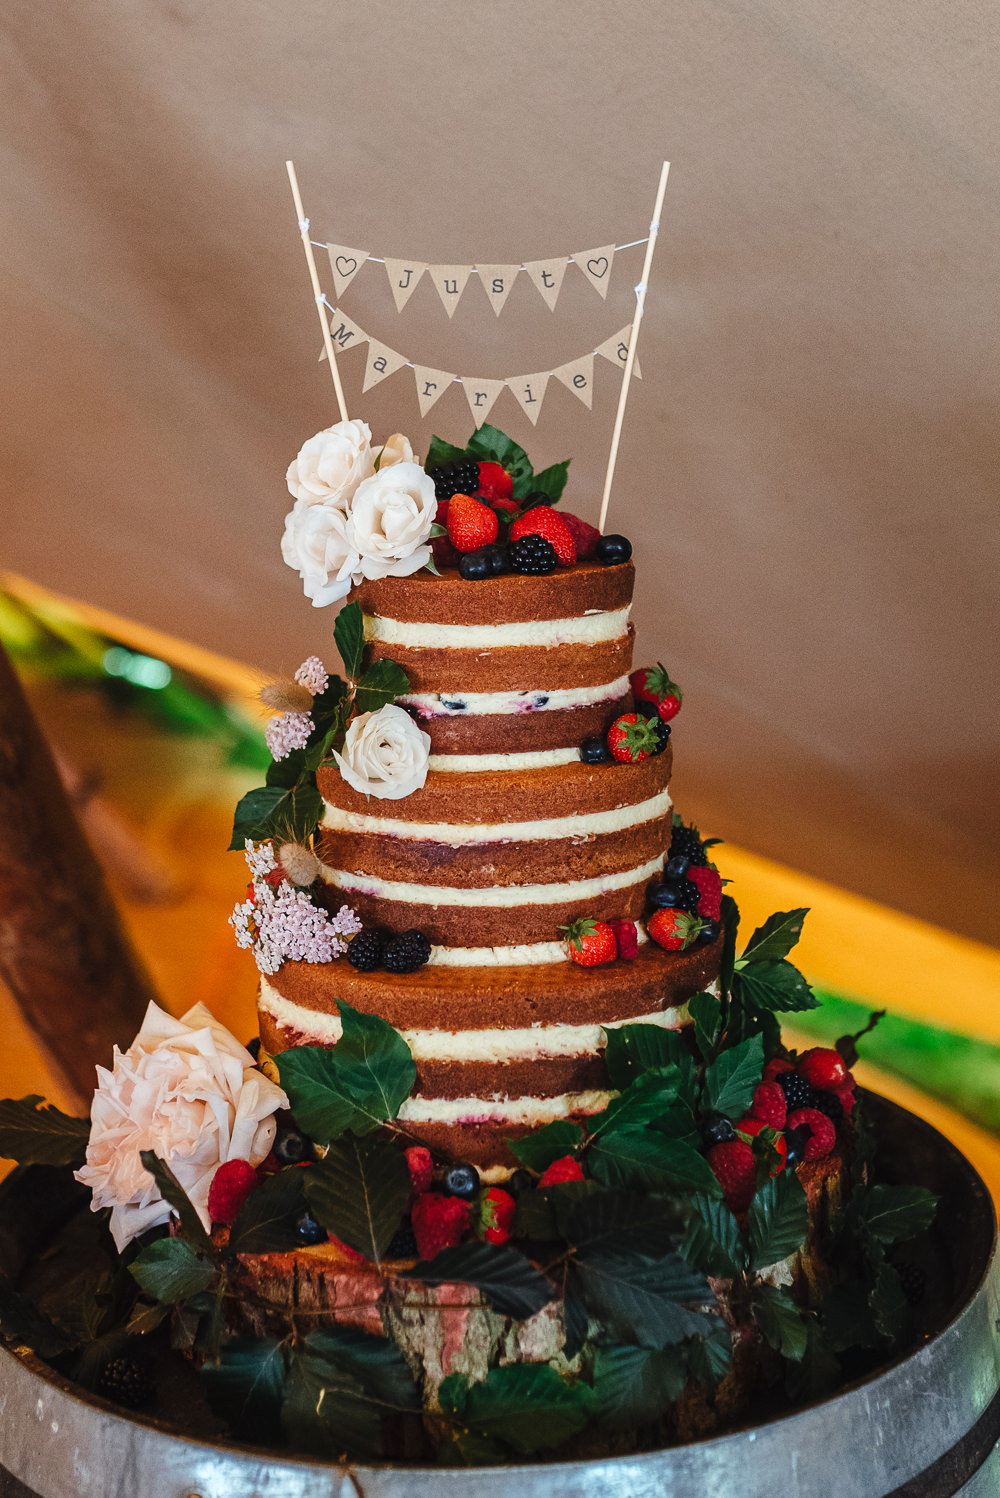 Naked Cake Sponge Layer Berries Flowers Bunting Topper Festival Party Wedding Kirsty Mackenzie Photography